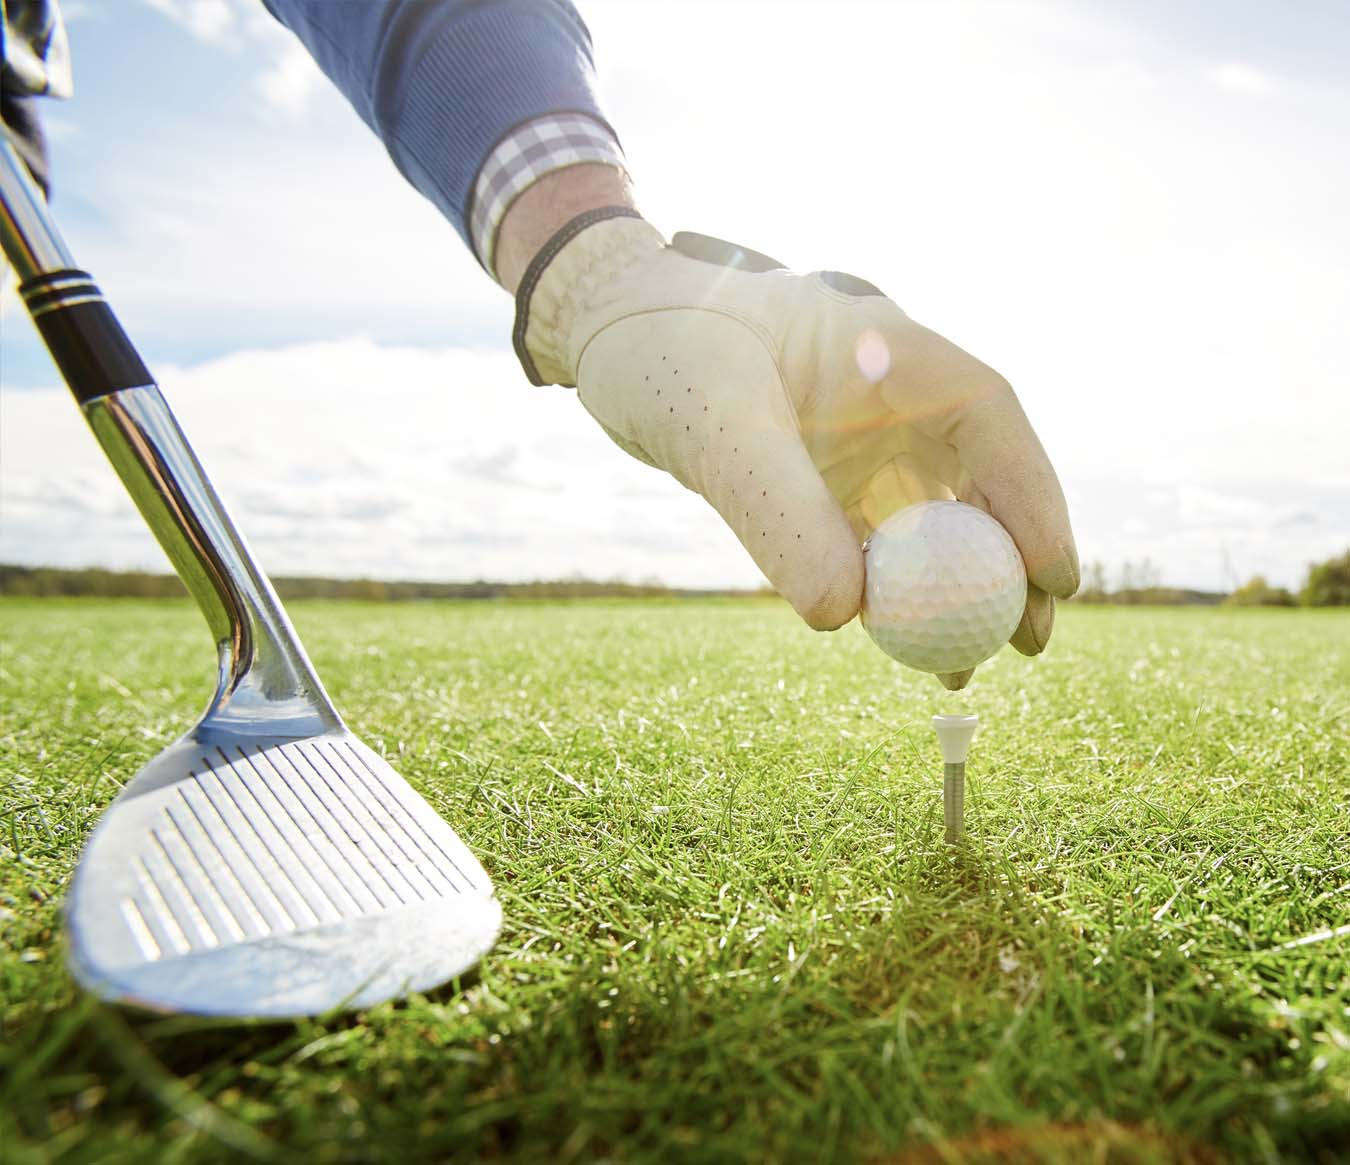 Things to Do in Jacksonville - Golf in Jacksonville